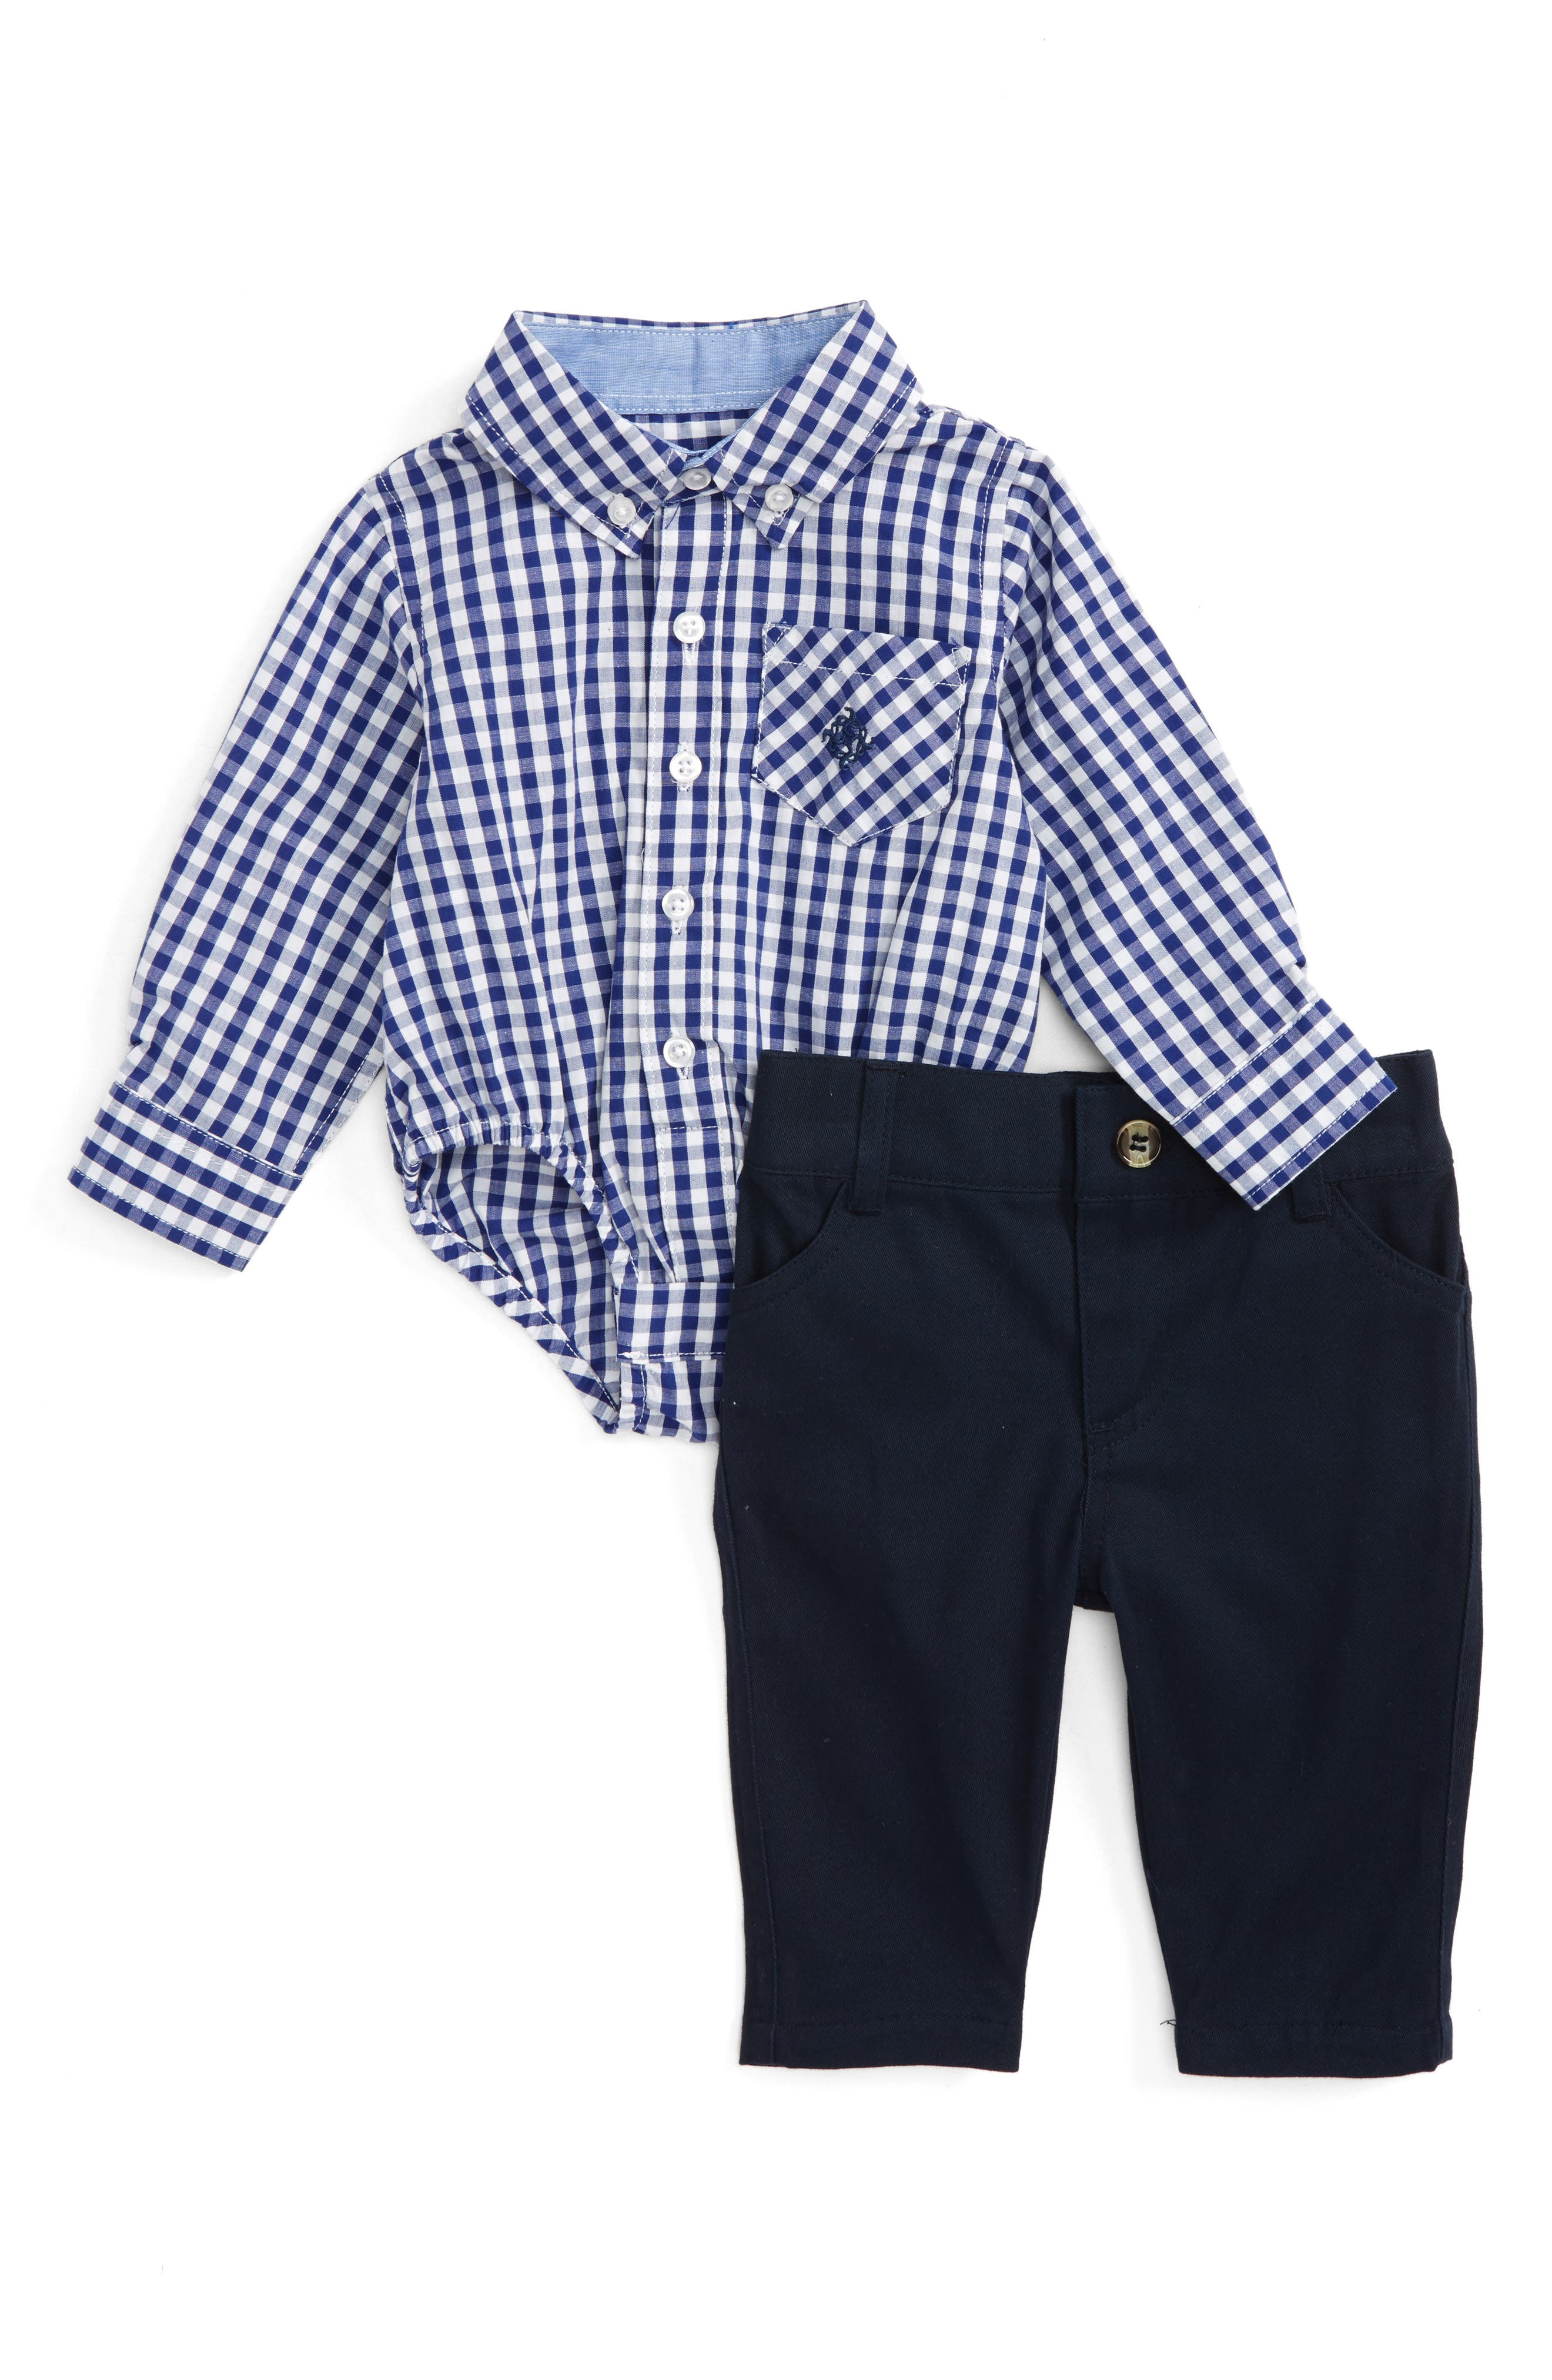 Andy & Evan Shirtzie Gingham Bodysuit & Pants Set (Baby Boys)